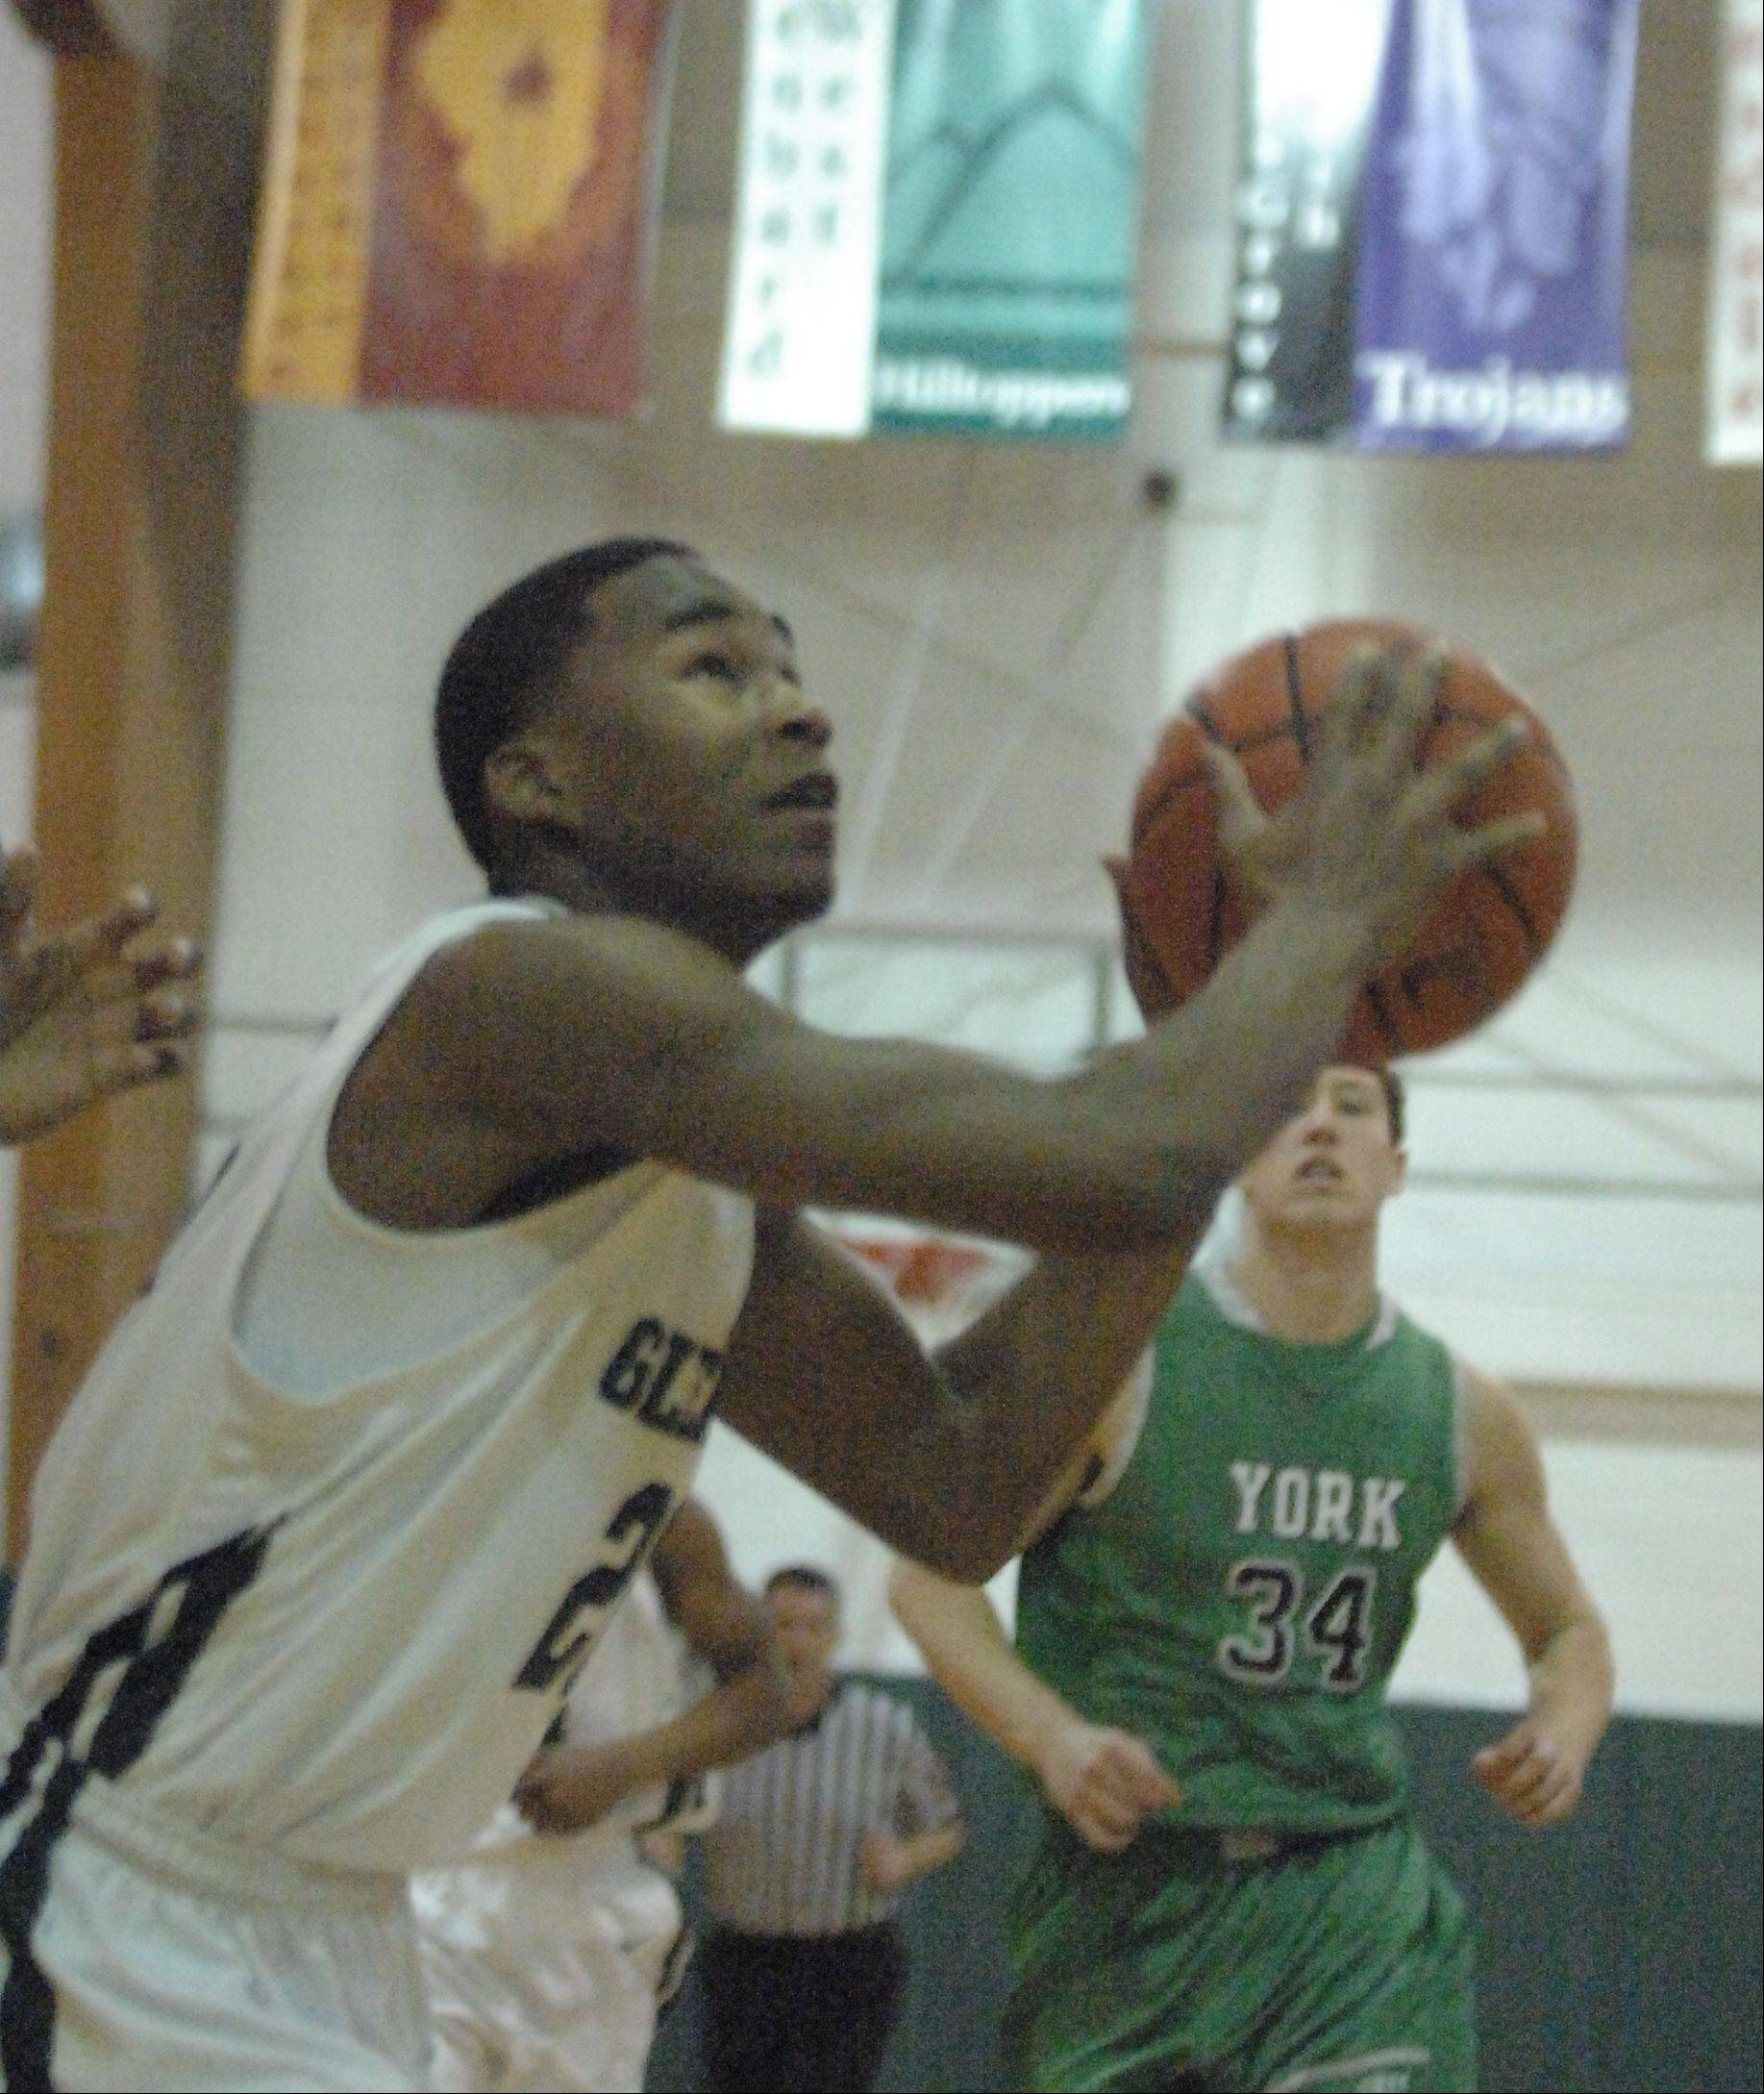 Images from the York vs. Glenbard West boys basketball game on Friday, Dec. 14, 2012.